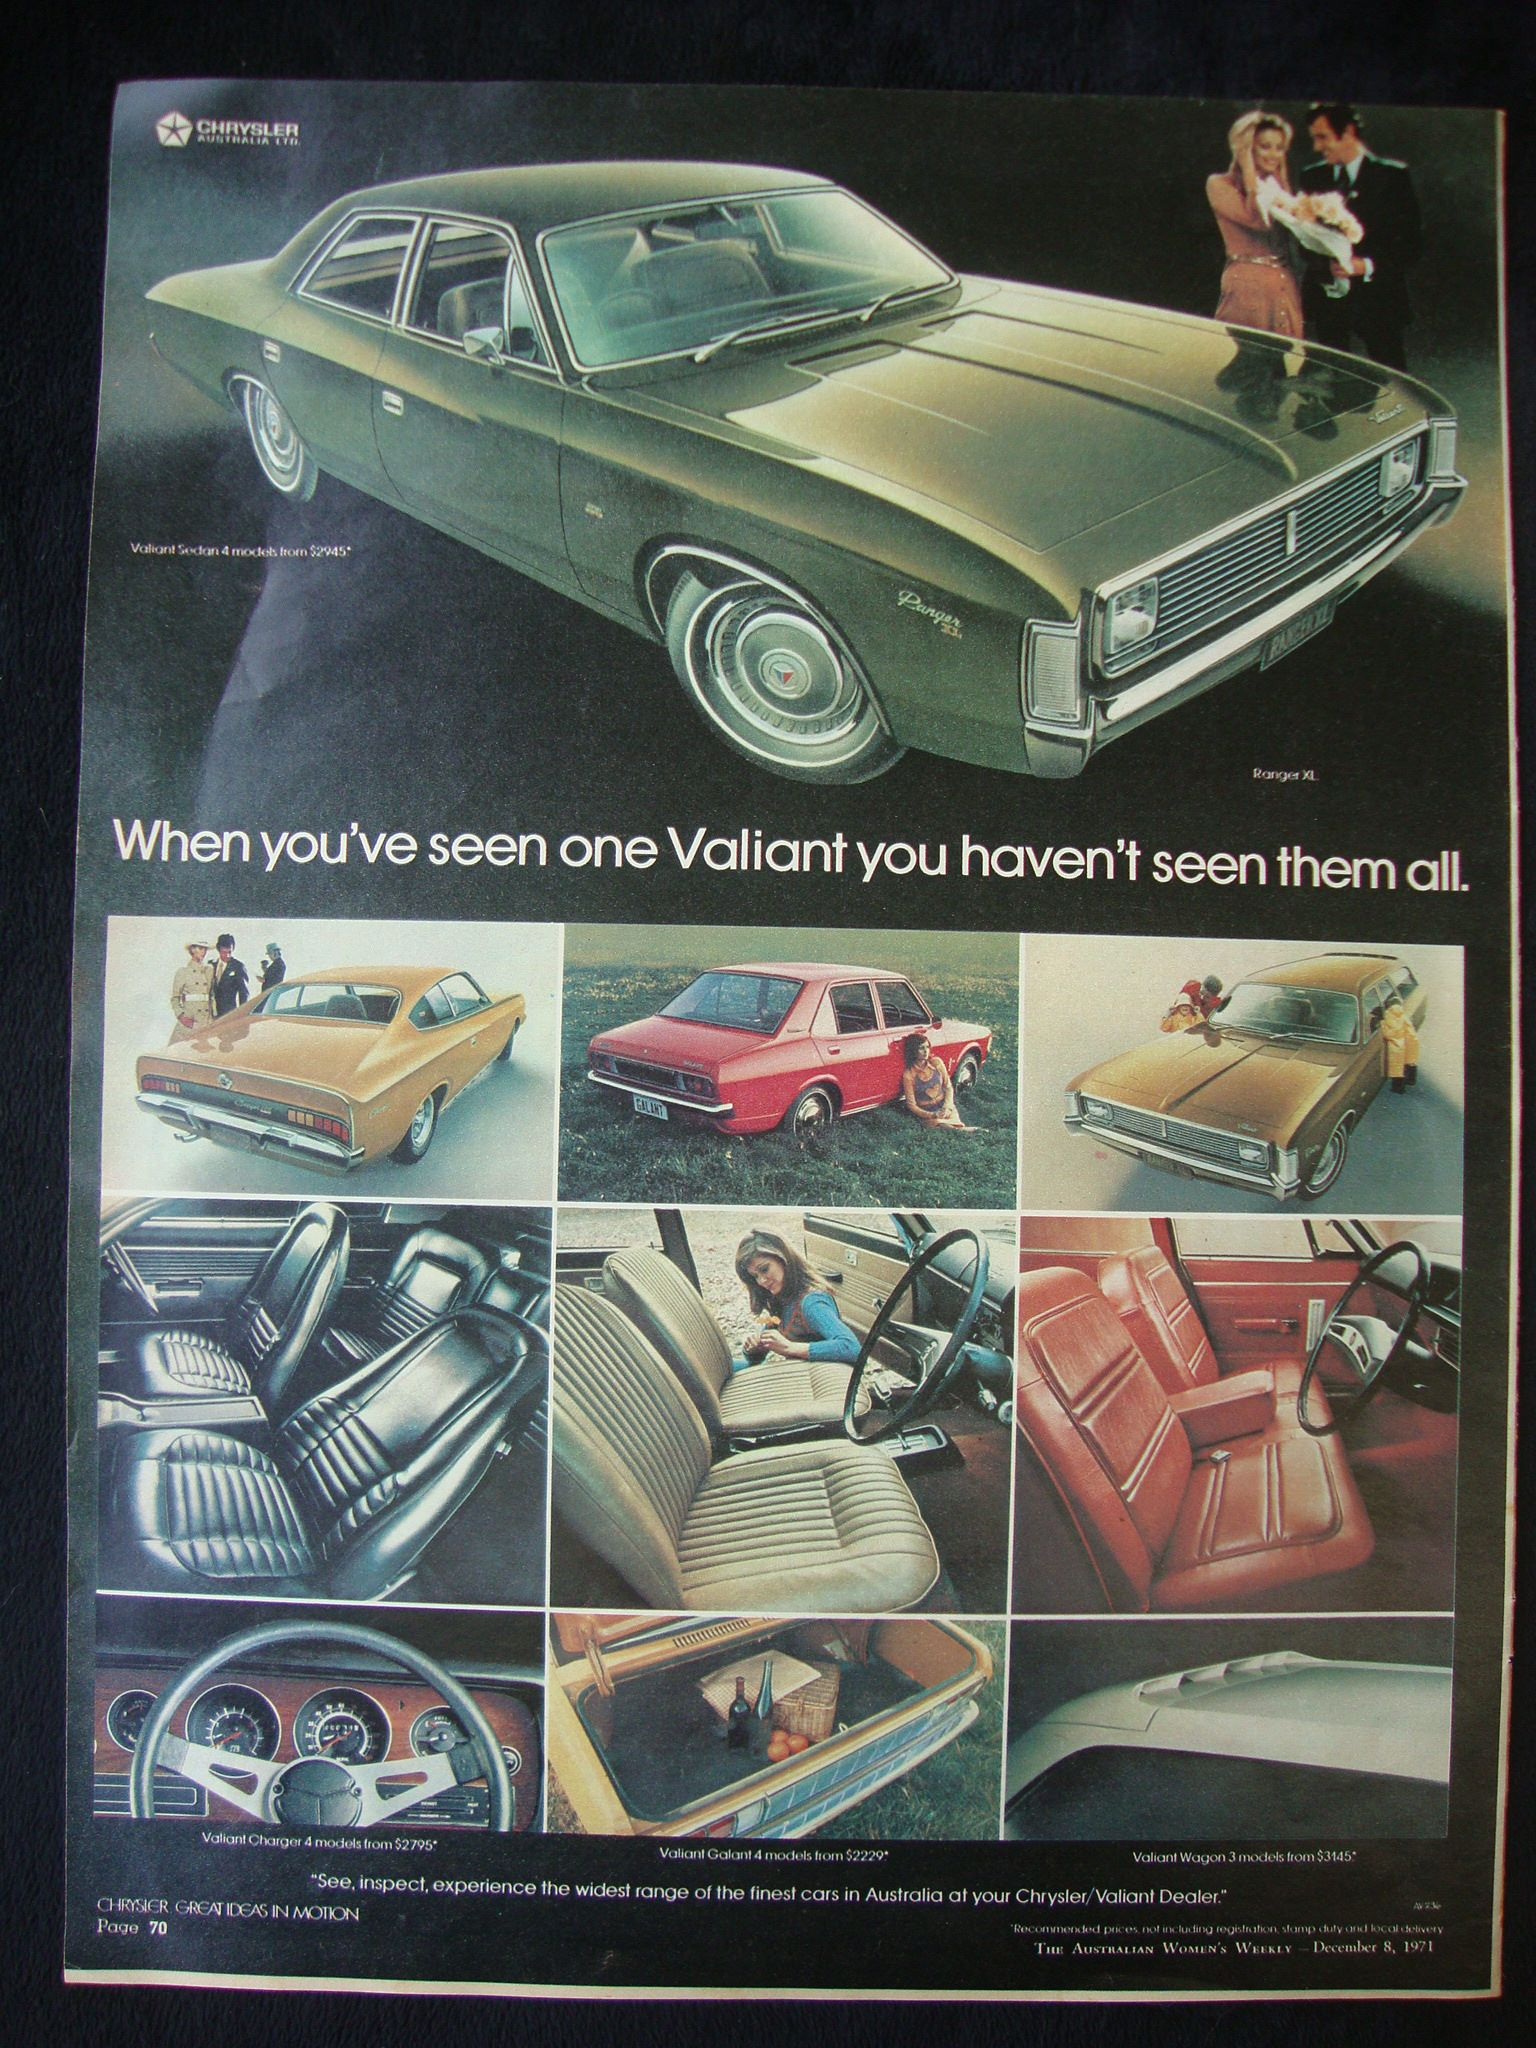 Pin by Gavin on Cars and motorcycles | Pinterest | Sedans, Cars and ...